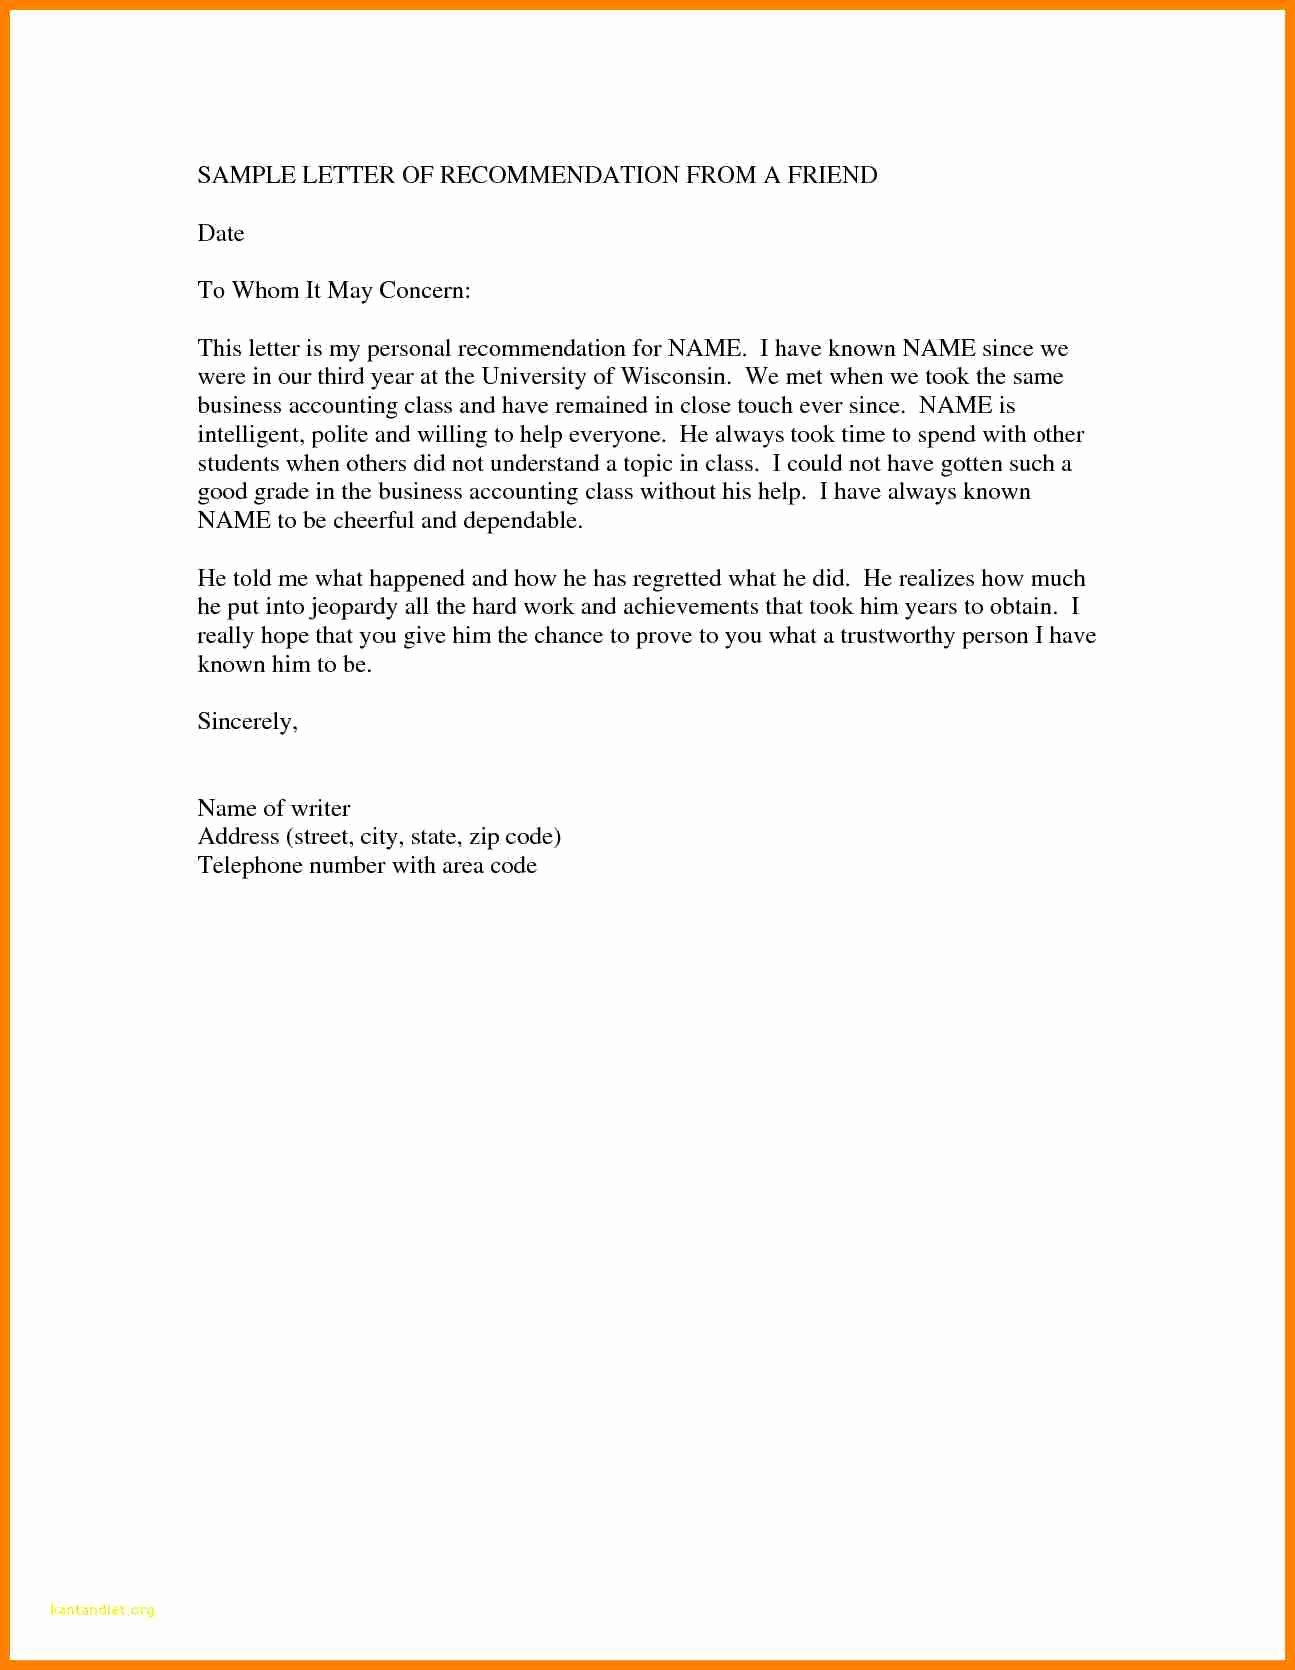 Letter Of Recommendation From Friend Fresh 7 Re Mendation Letter for Immigration for A Friend